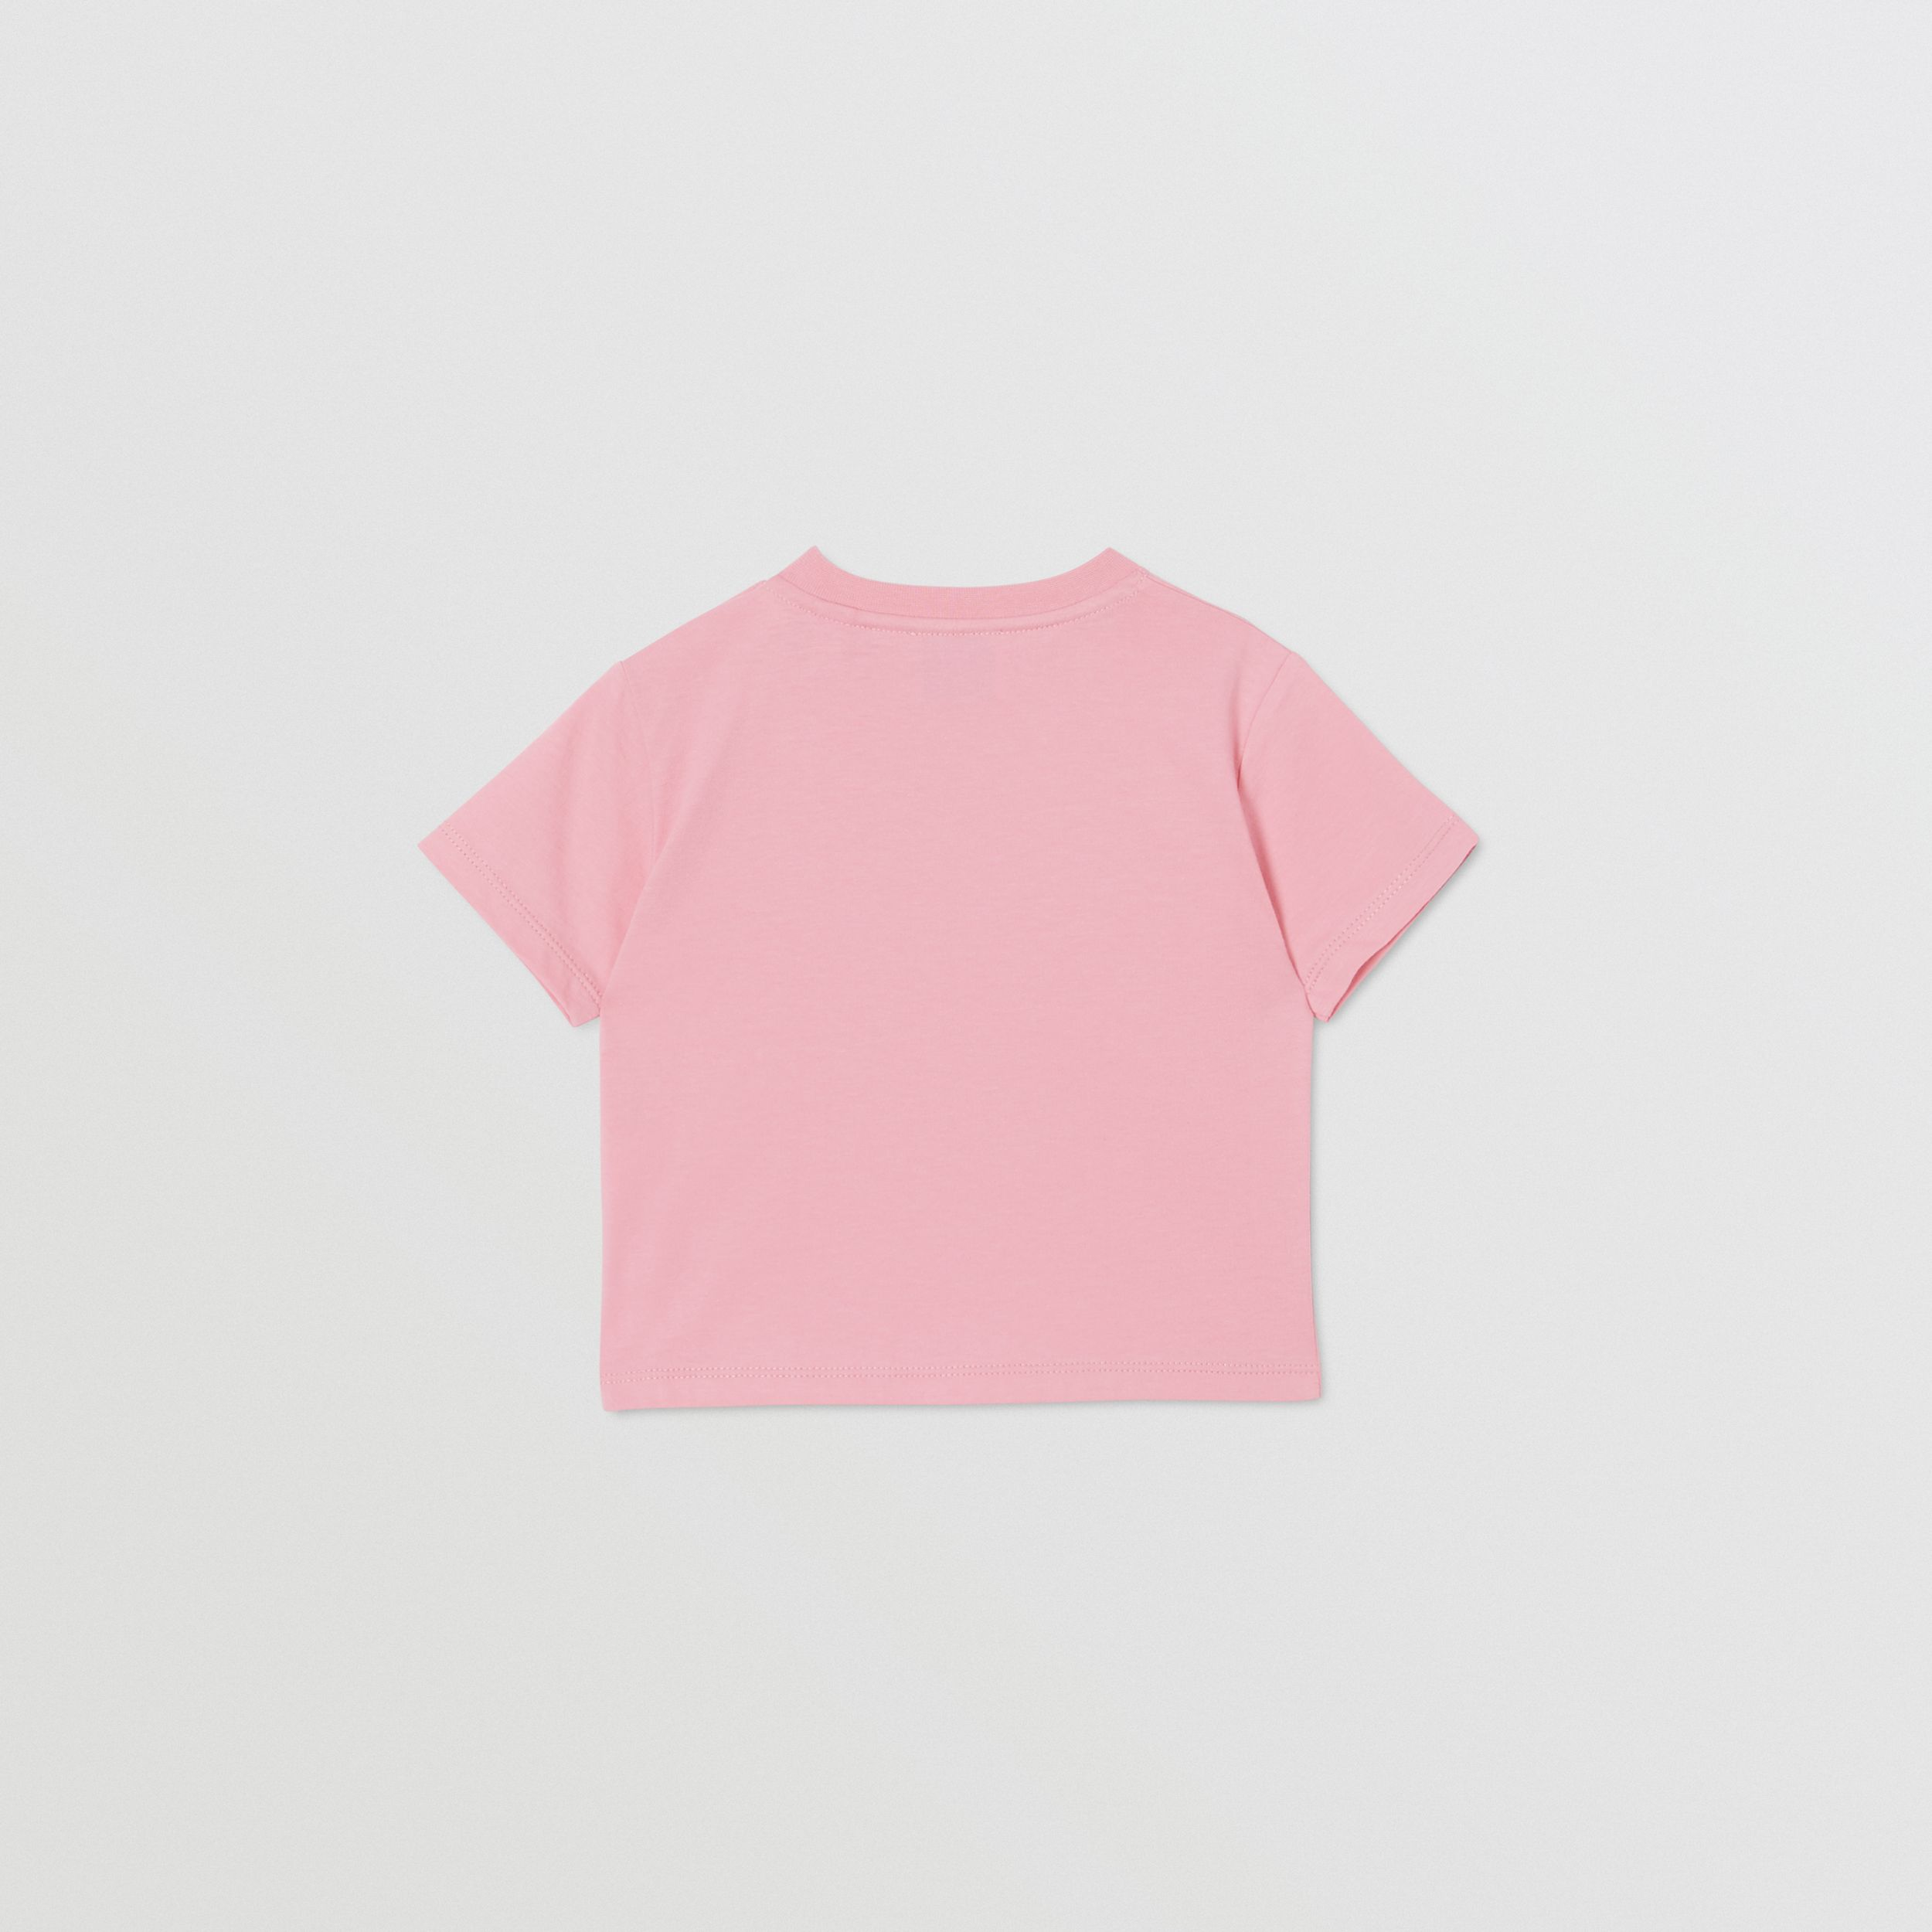 Logo Print Cotton T-shirt in Candy Pink - Children | Burberry - 4